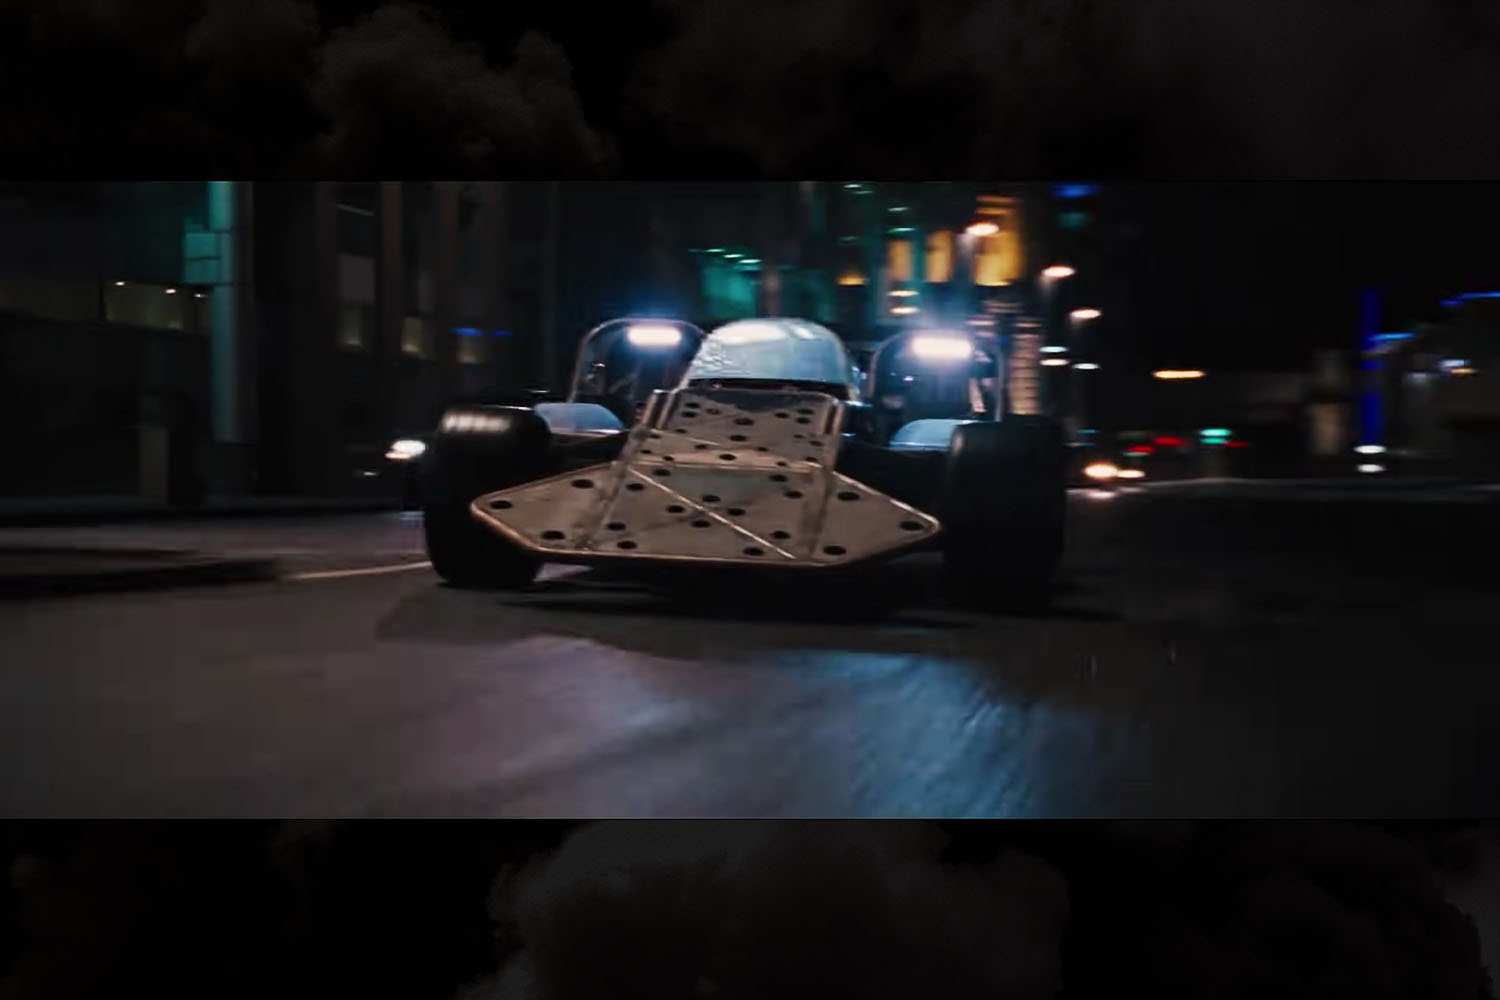 The infamous Flip Car driven by Owen Shaw (Luke Evans) and Vegh (Clara Paget) in Fast & Furious 6